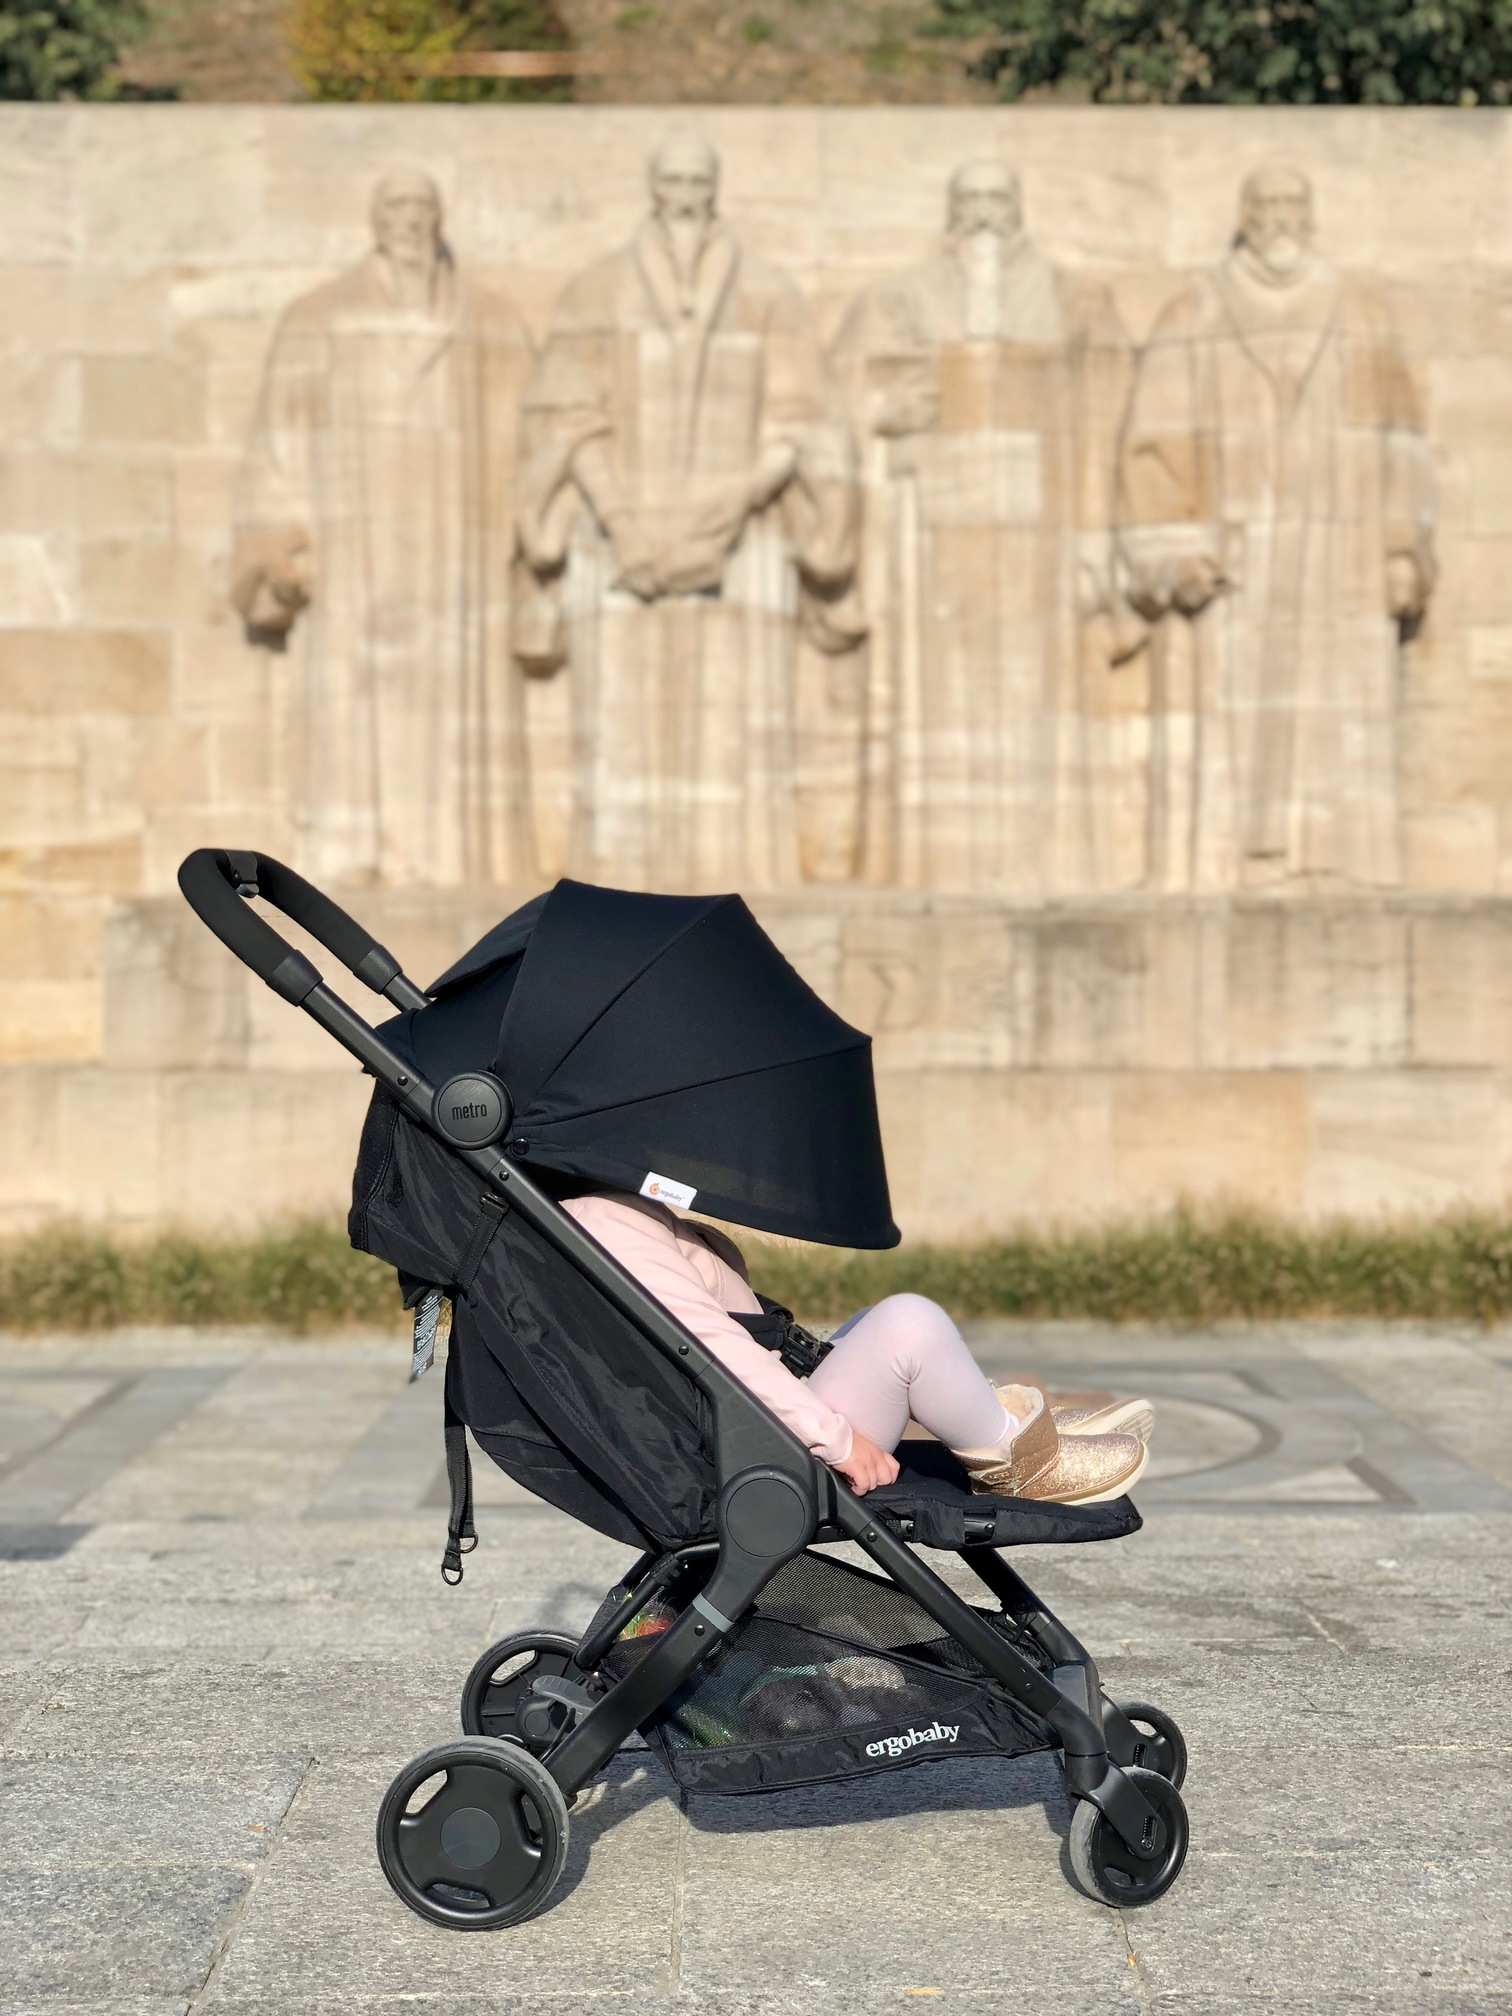 Ergobaby Travel Stroller